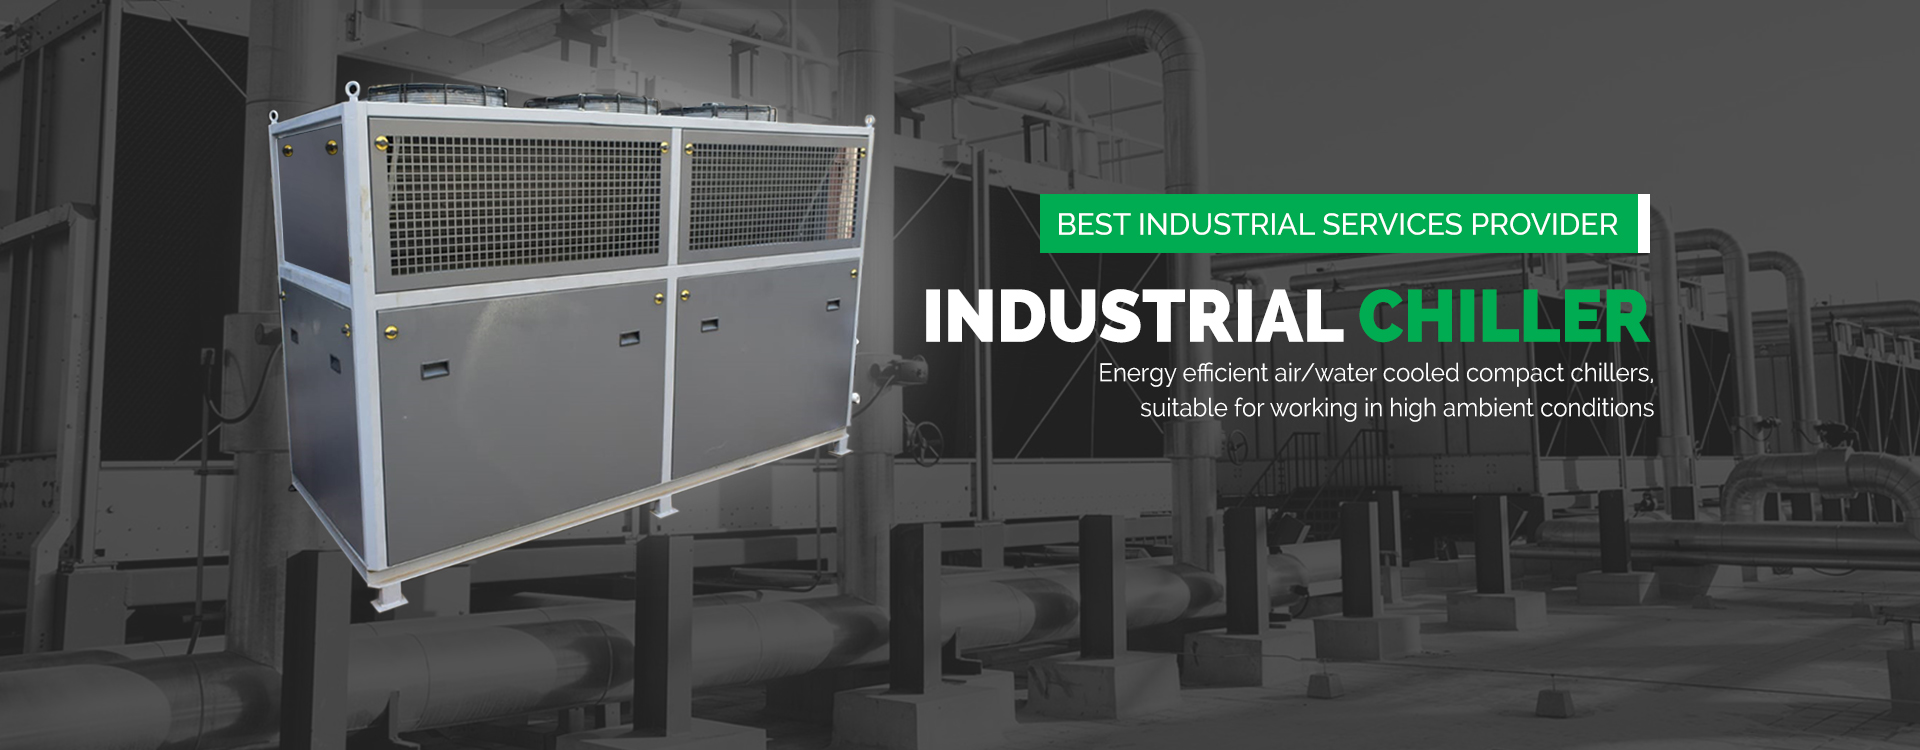 Industrial Water Chiller in Bangladesh, South Africa, Turkey, Egypt, UAE, Qatar, Kuwait, Oman